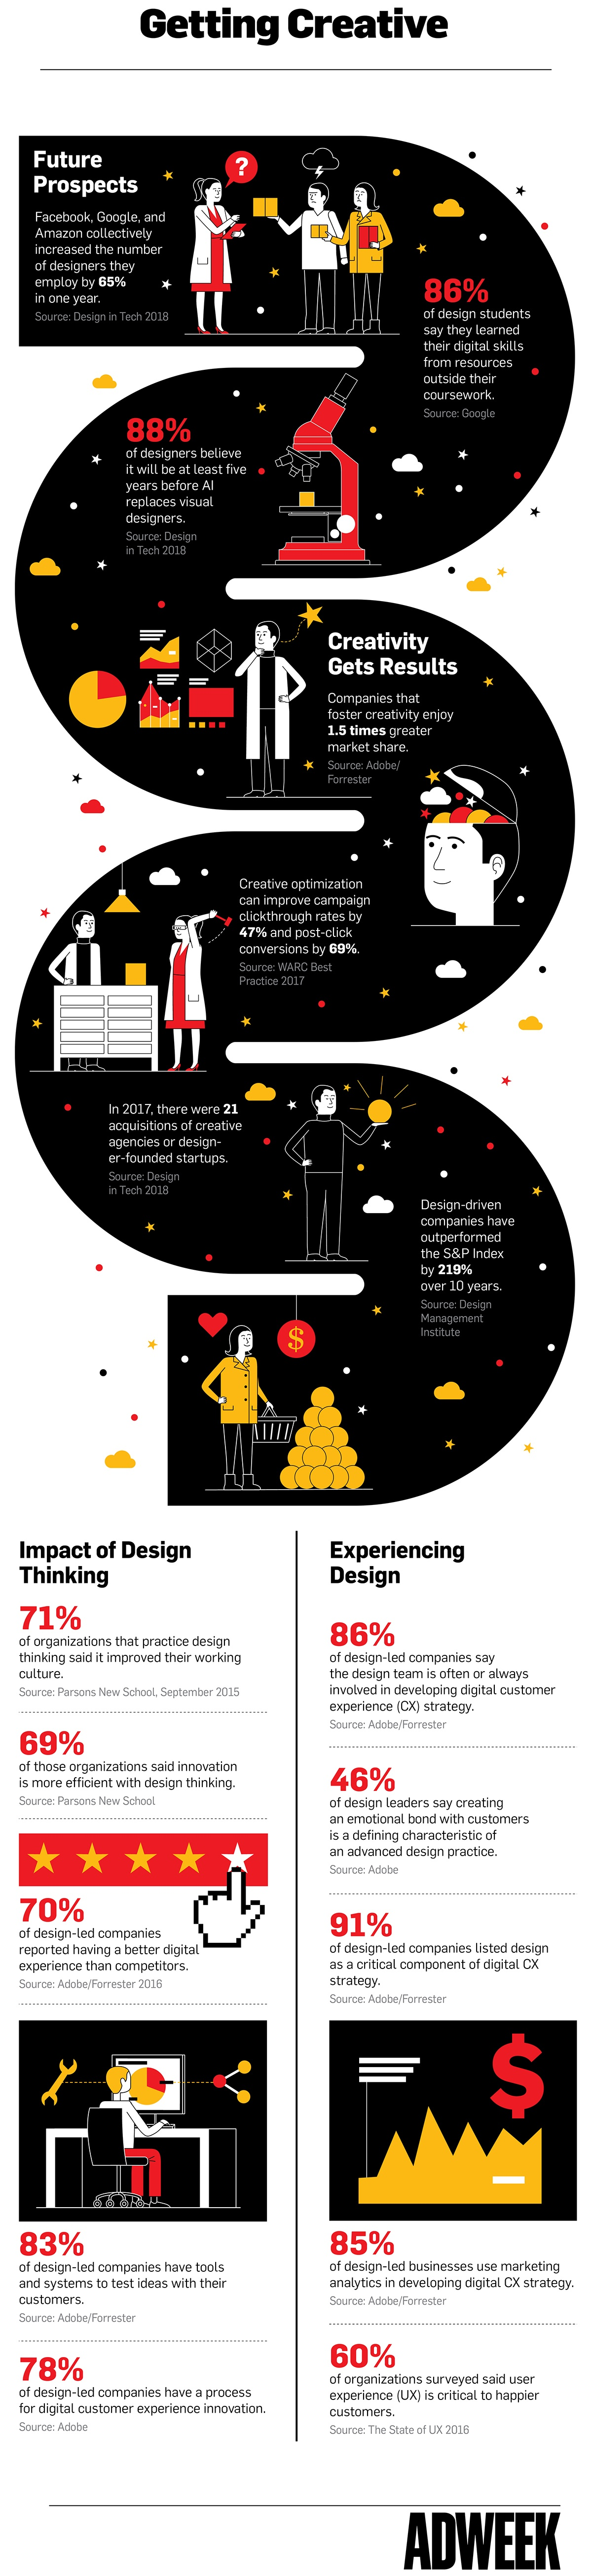 design-thinking-customer-experience-adweek